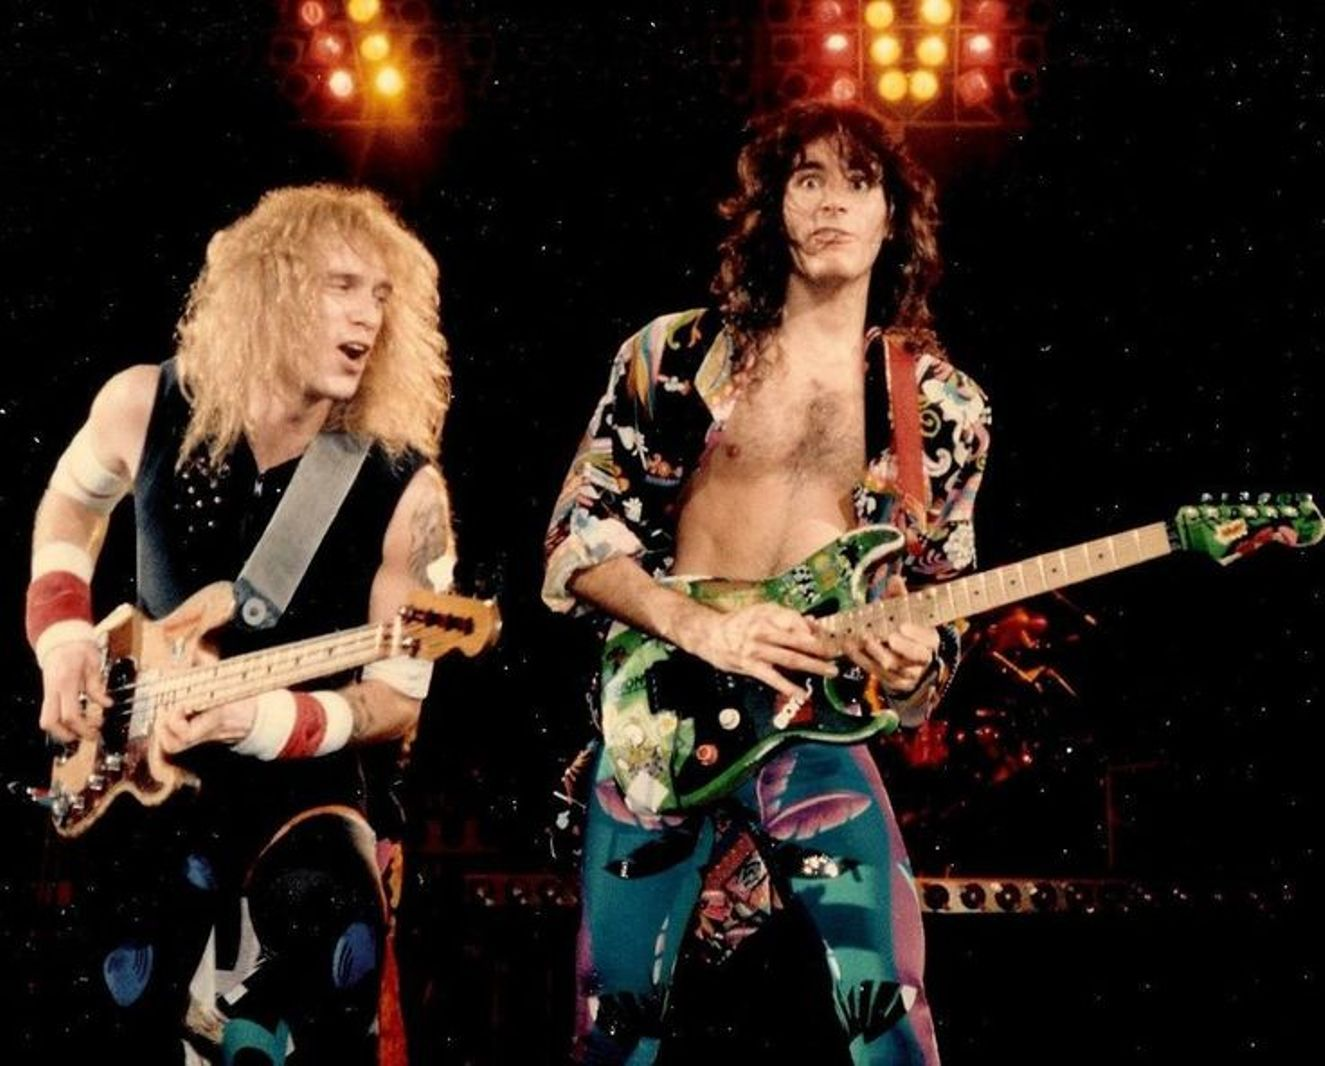 Billy Sheehan Steve Vai On Stage With Dlr Band 1986 Steve Vai Billy Sheehan David Lee Roth